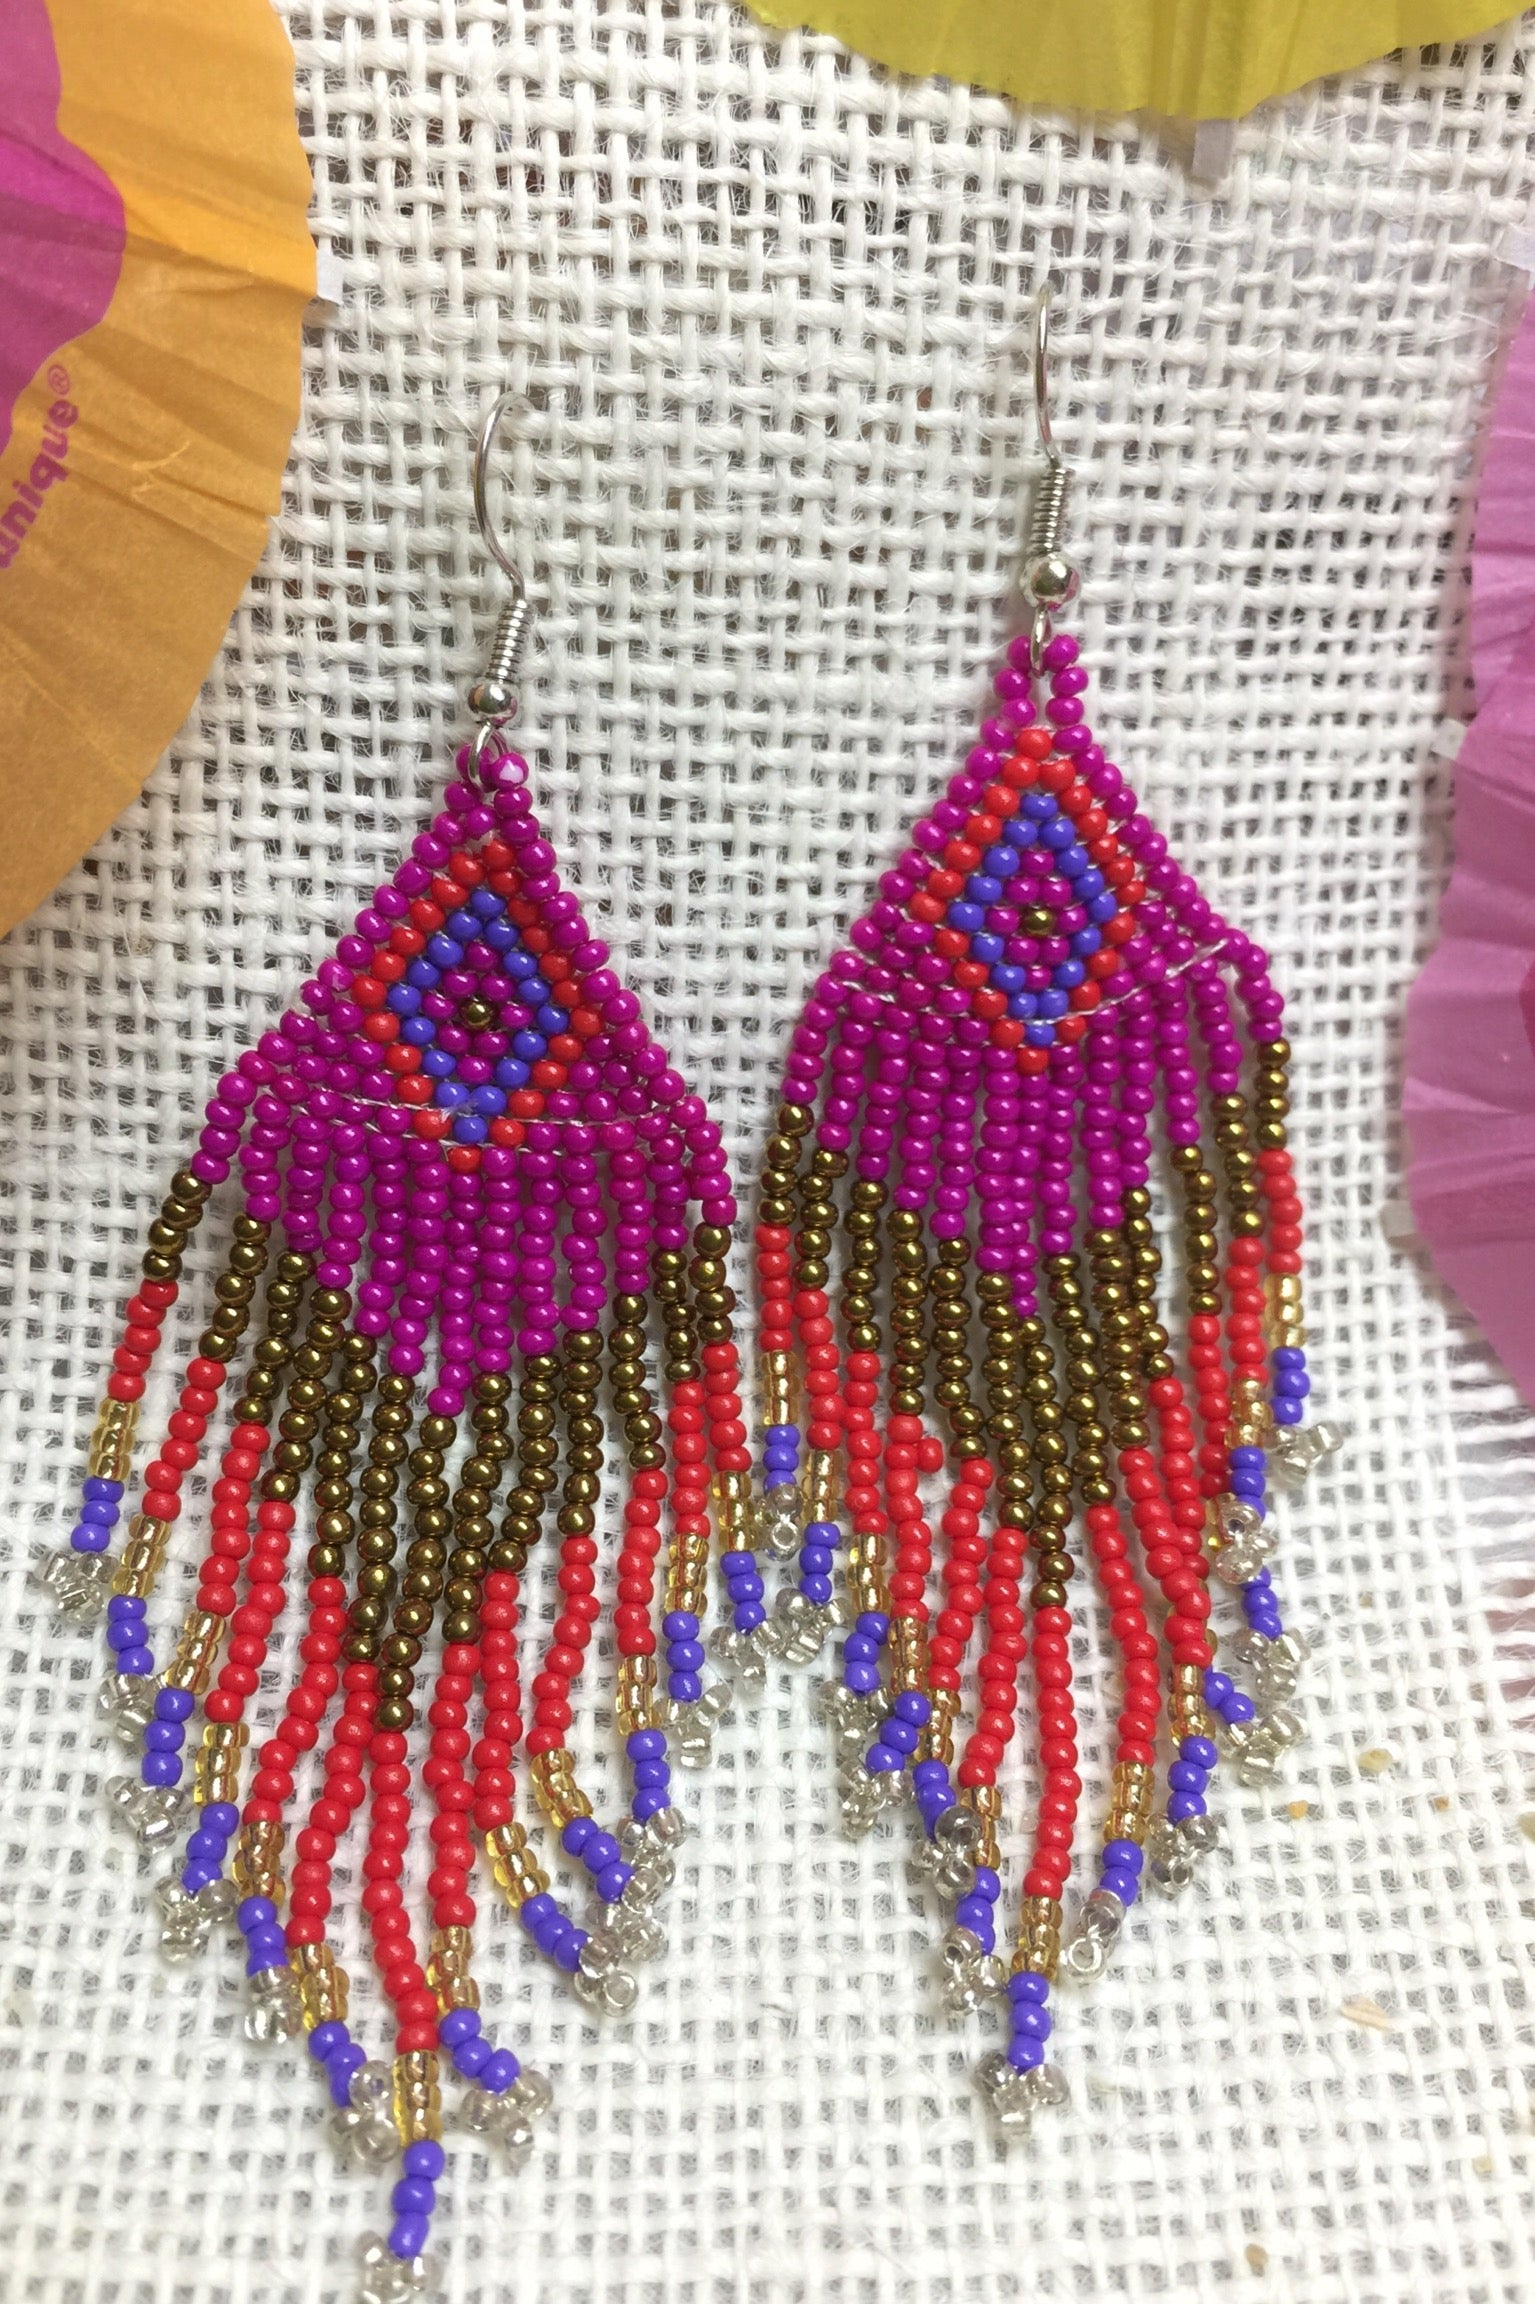 Earrings Rainbow Boho Seeds Tassels in Pink, seed bead earrings, peyote earrings, Ibizia style jewellery